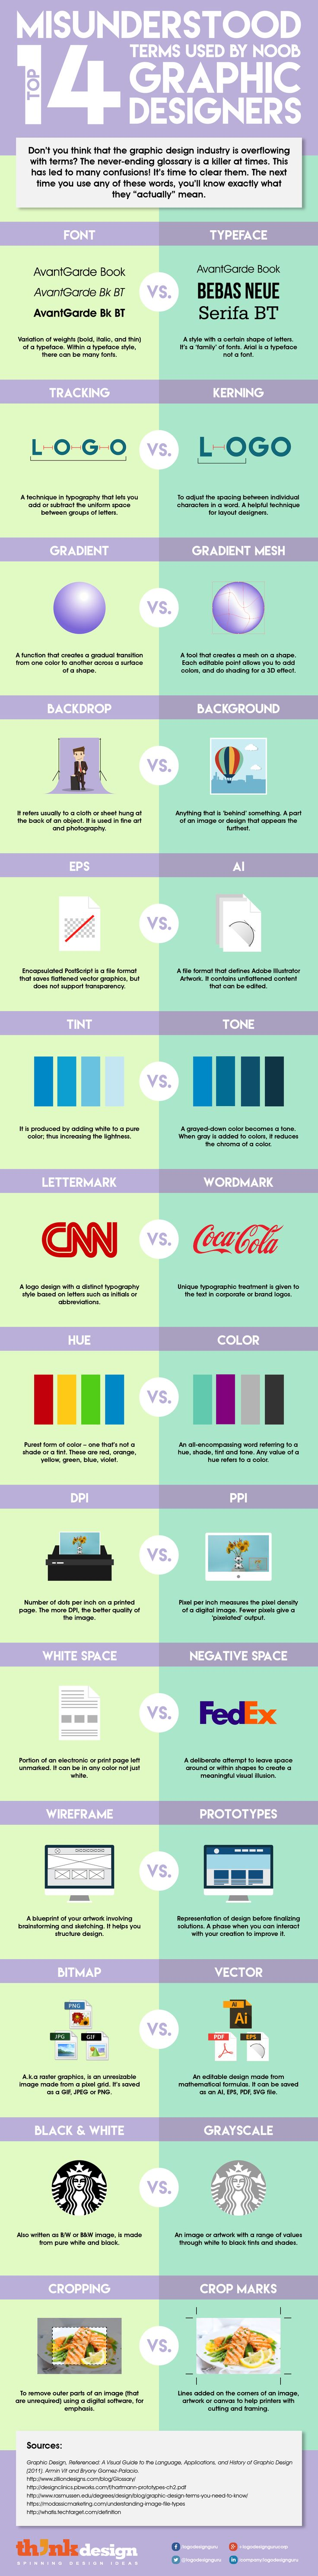 Infographic: Top 14 Graphic Design Terms Commonly Misused By Novice Creatives - DesignTAXI.com